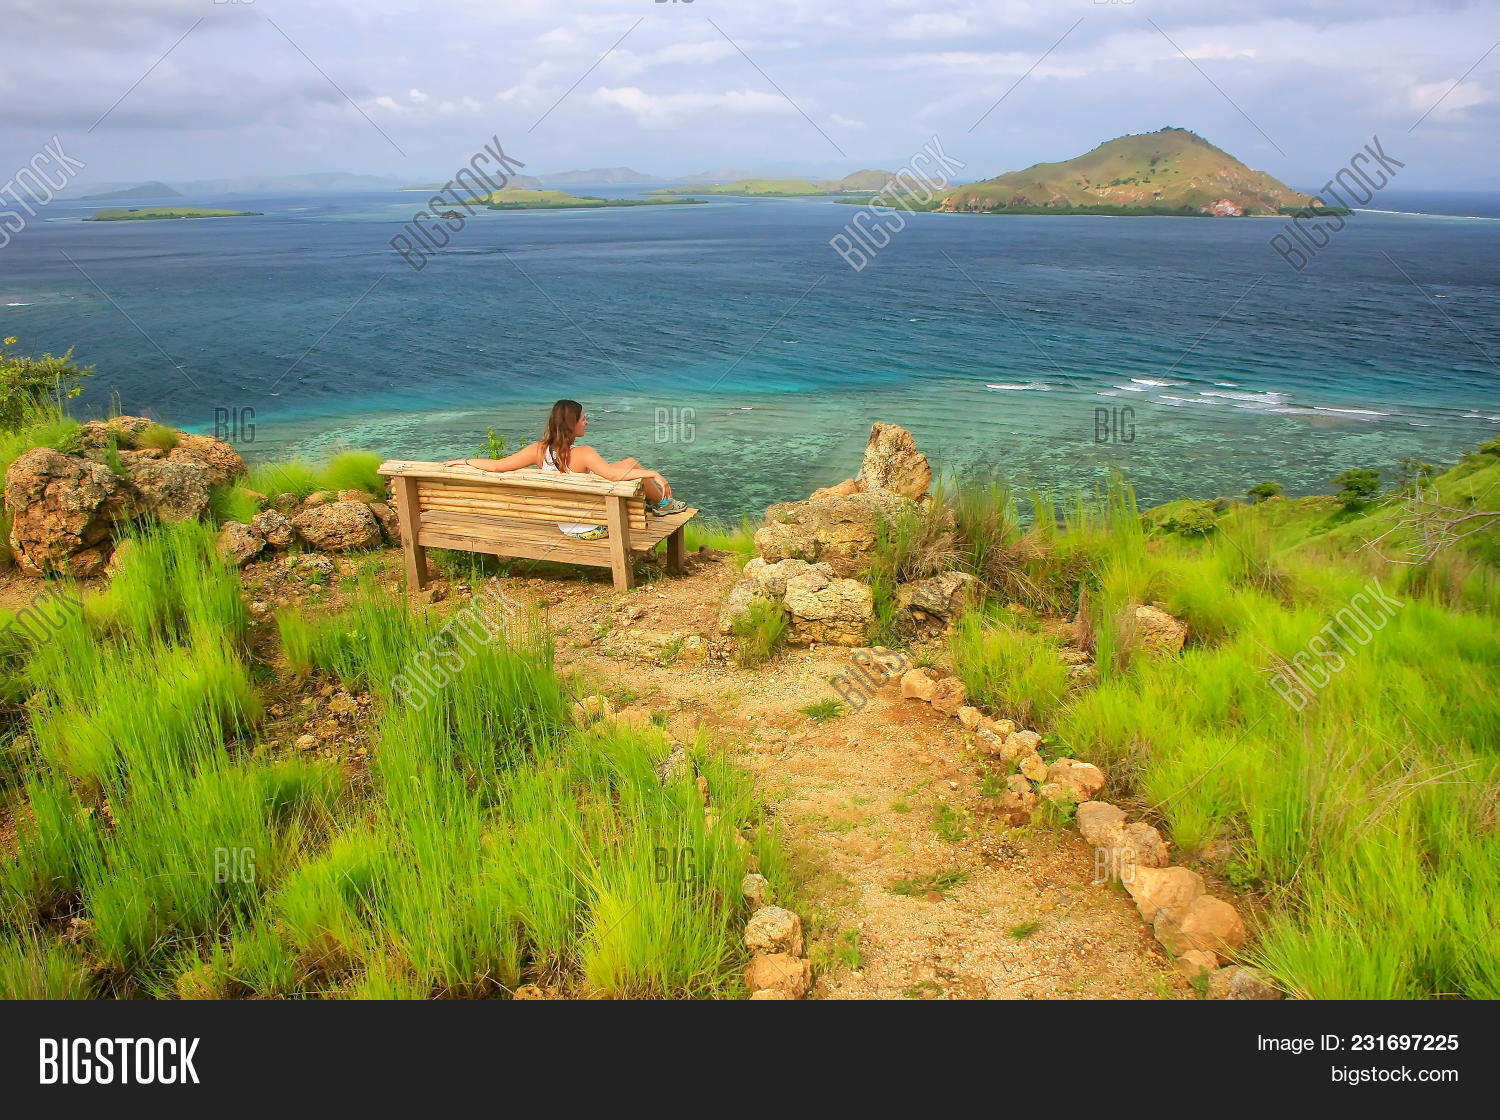 archipelago,asia,asian,bench,coast,coastline,destination,flores,girl,hiking,indonesia,indonesian,island,kanawa,komodo,landmark,landscape,lesser,national,nature,nusa,ocean,oceania,outdoor,overlook,pacific,panorama,paradise,park,path,person,relaxing,resort,scenic,sea,shore,sitting,southeast,sunda,tenggara,tourism,trail,travel,tropical,tropics,view,viewpoint,woman,wooden,young